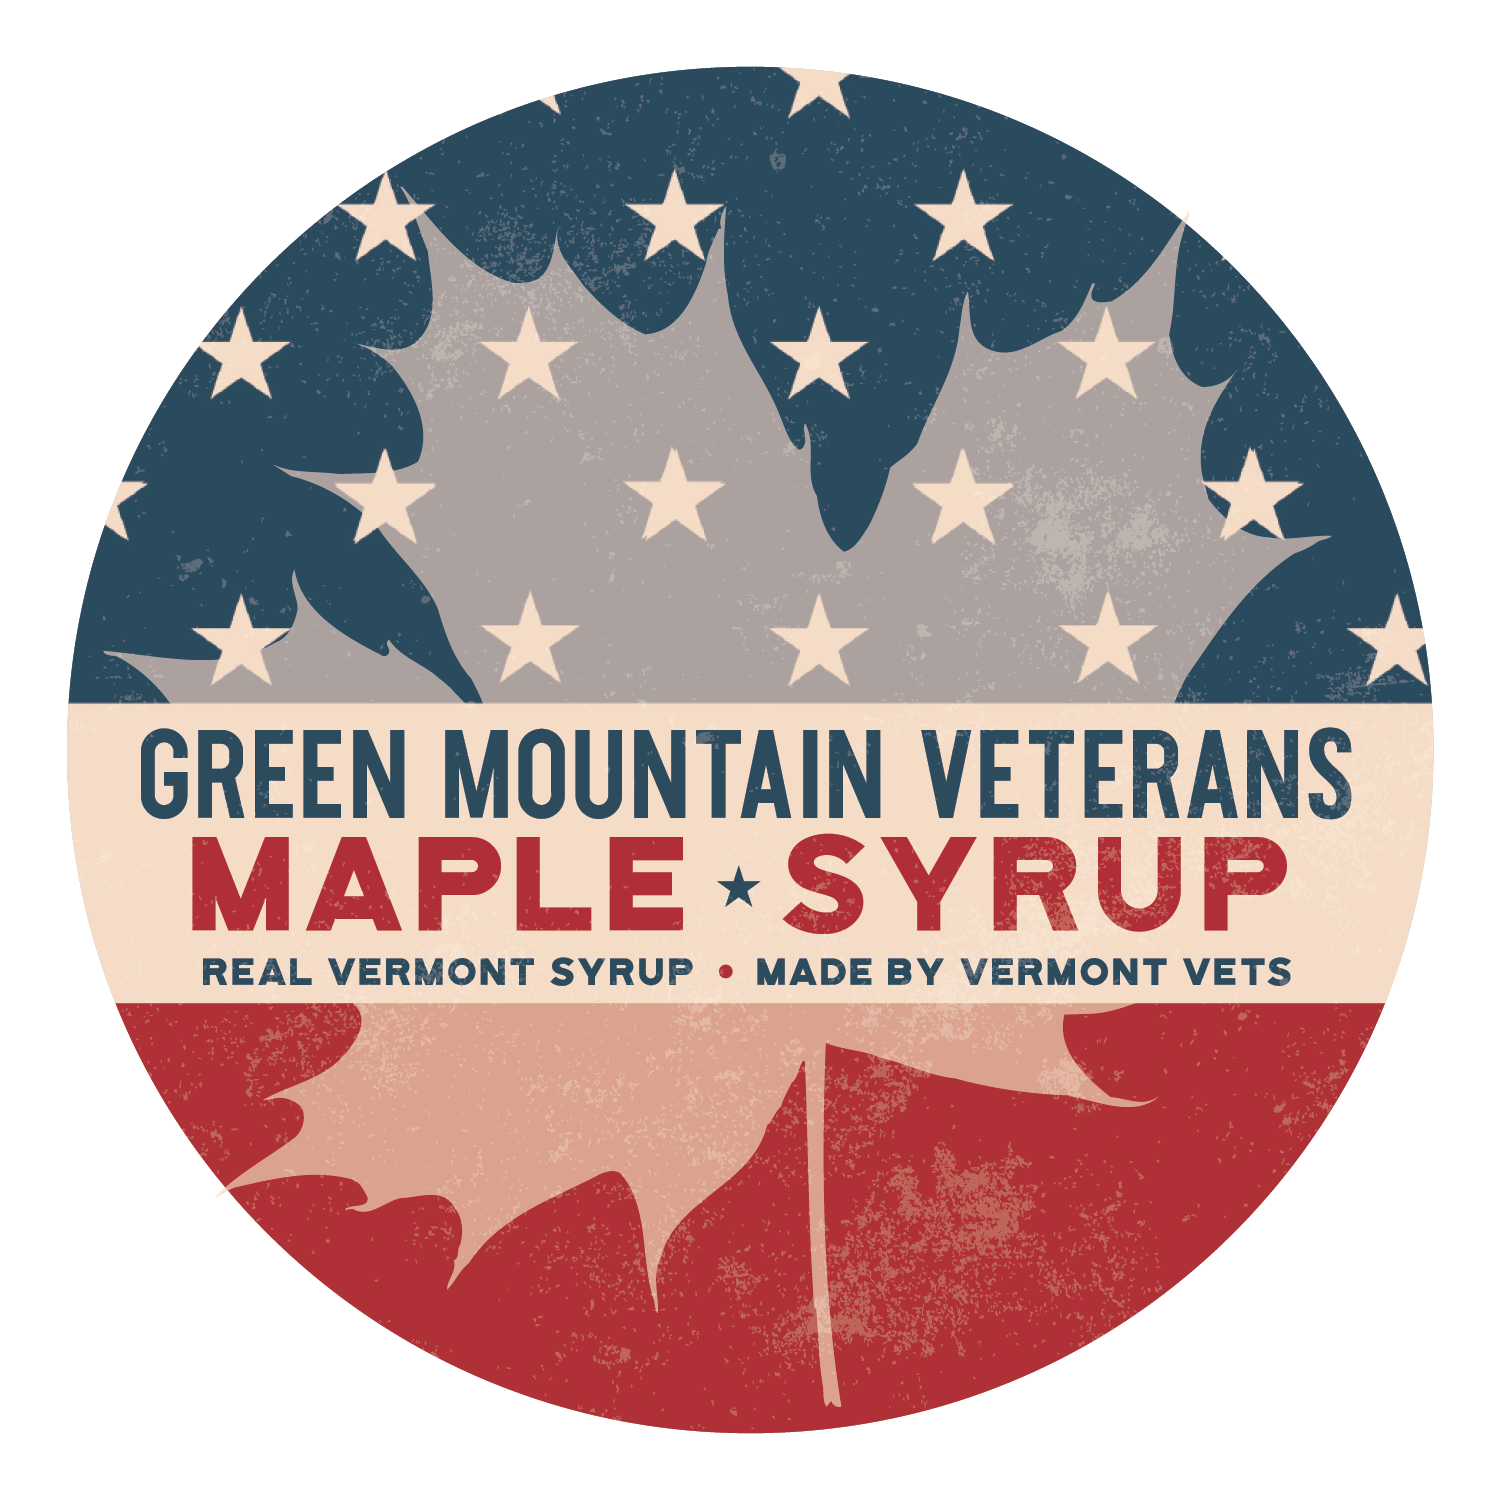 Green Mountain Veterans Maple Syrup